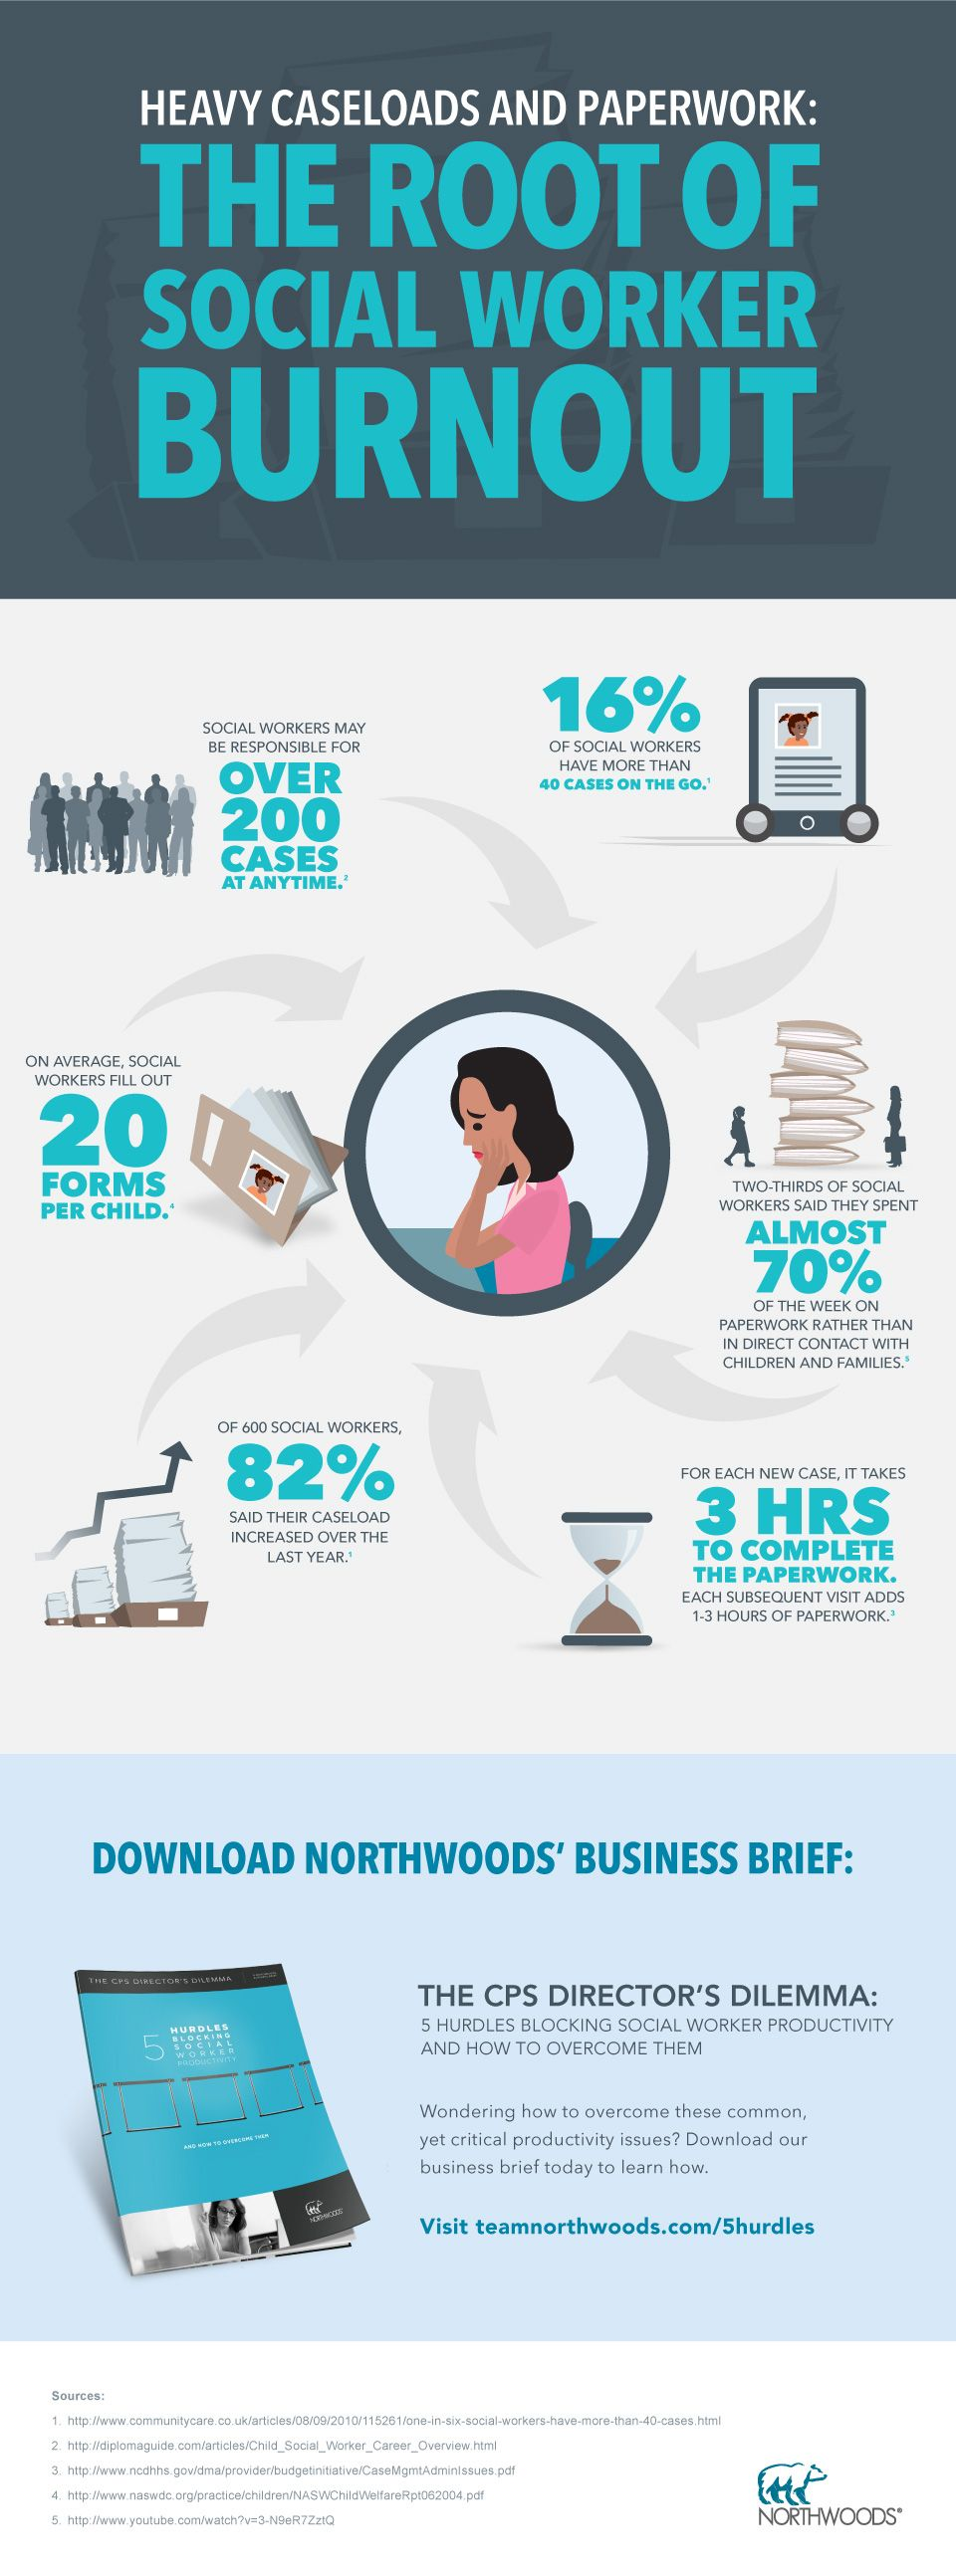 heavy caseloads and paperwork the root of social worker burnout heavy caseloads and paperwork the root of social worker burnout infographic socialwork